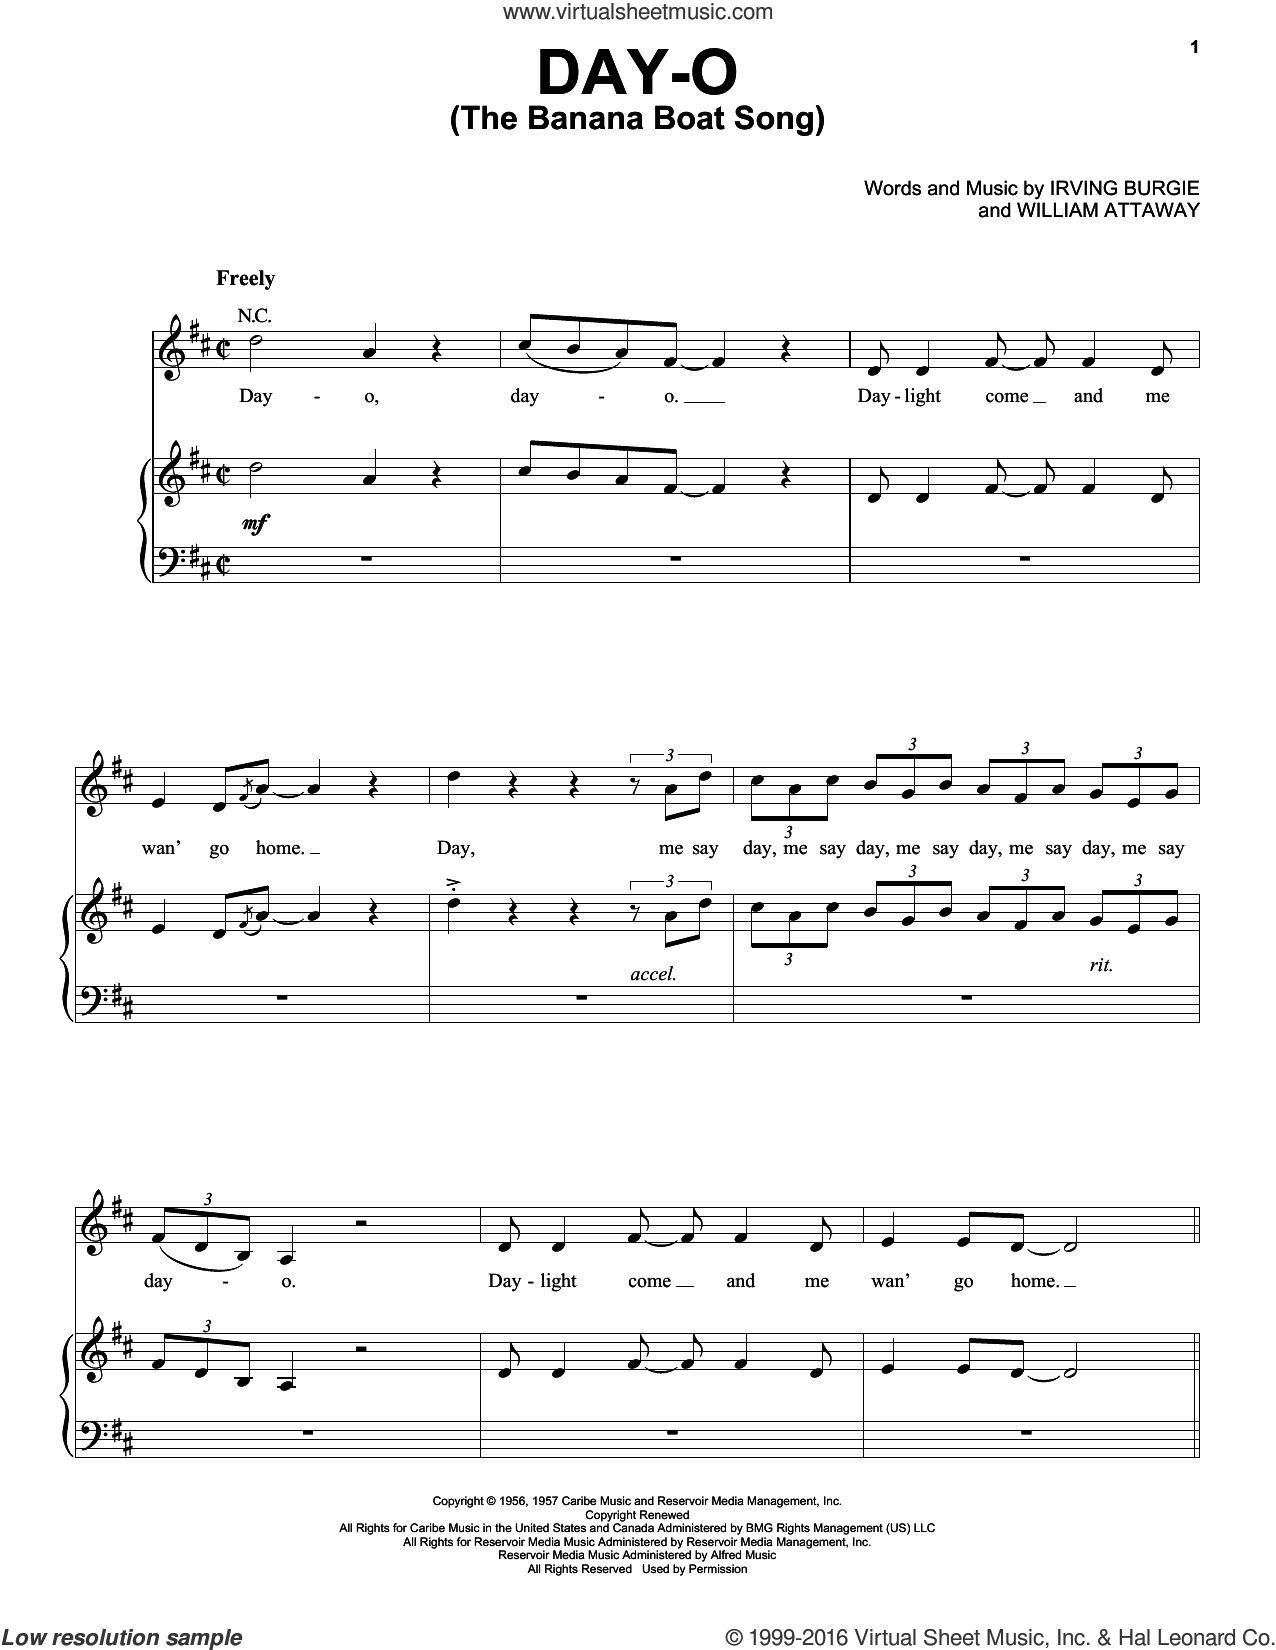 Day-O (The Banana Boat Song) sheet music for voice, piano or guitar by Harry Belafonte, Irving Burgie and William Attaway. Score Image Preview.